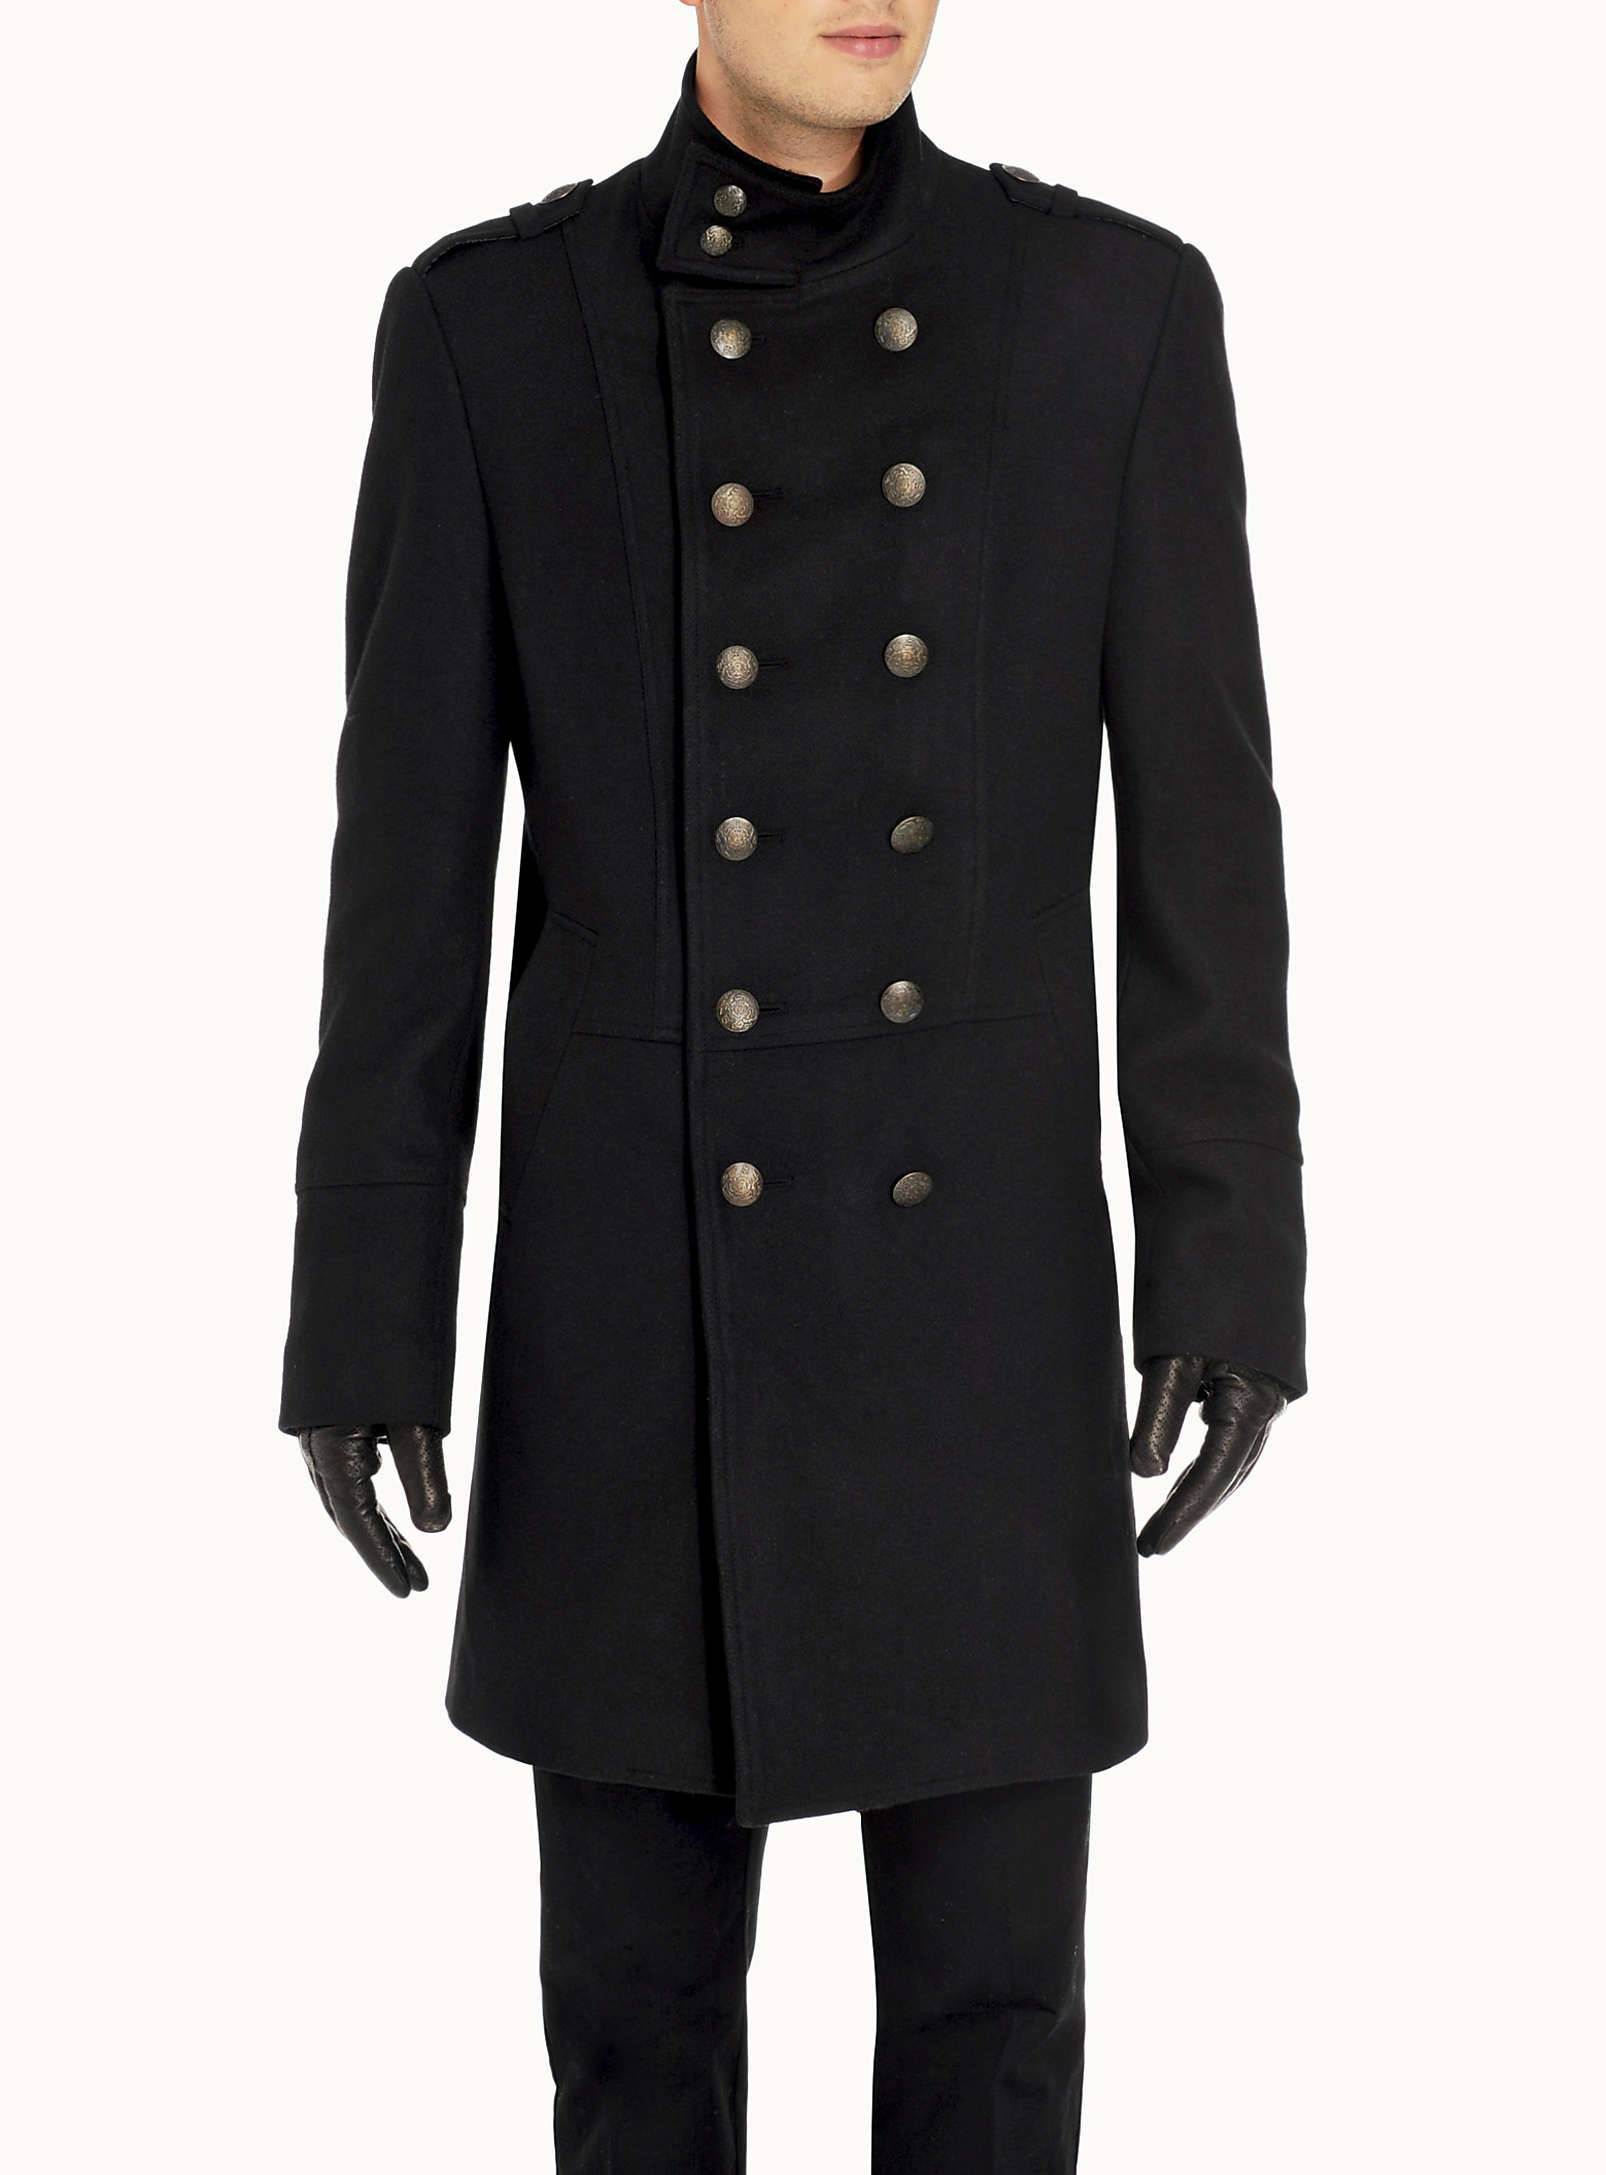 Long military coat, high neck | Men's Business Casual | Pinterest ...